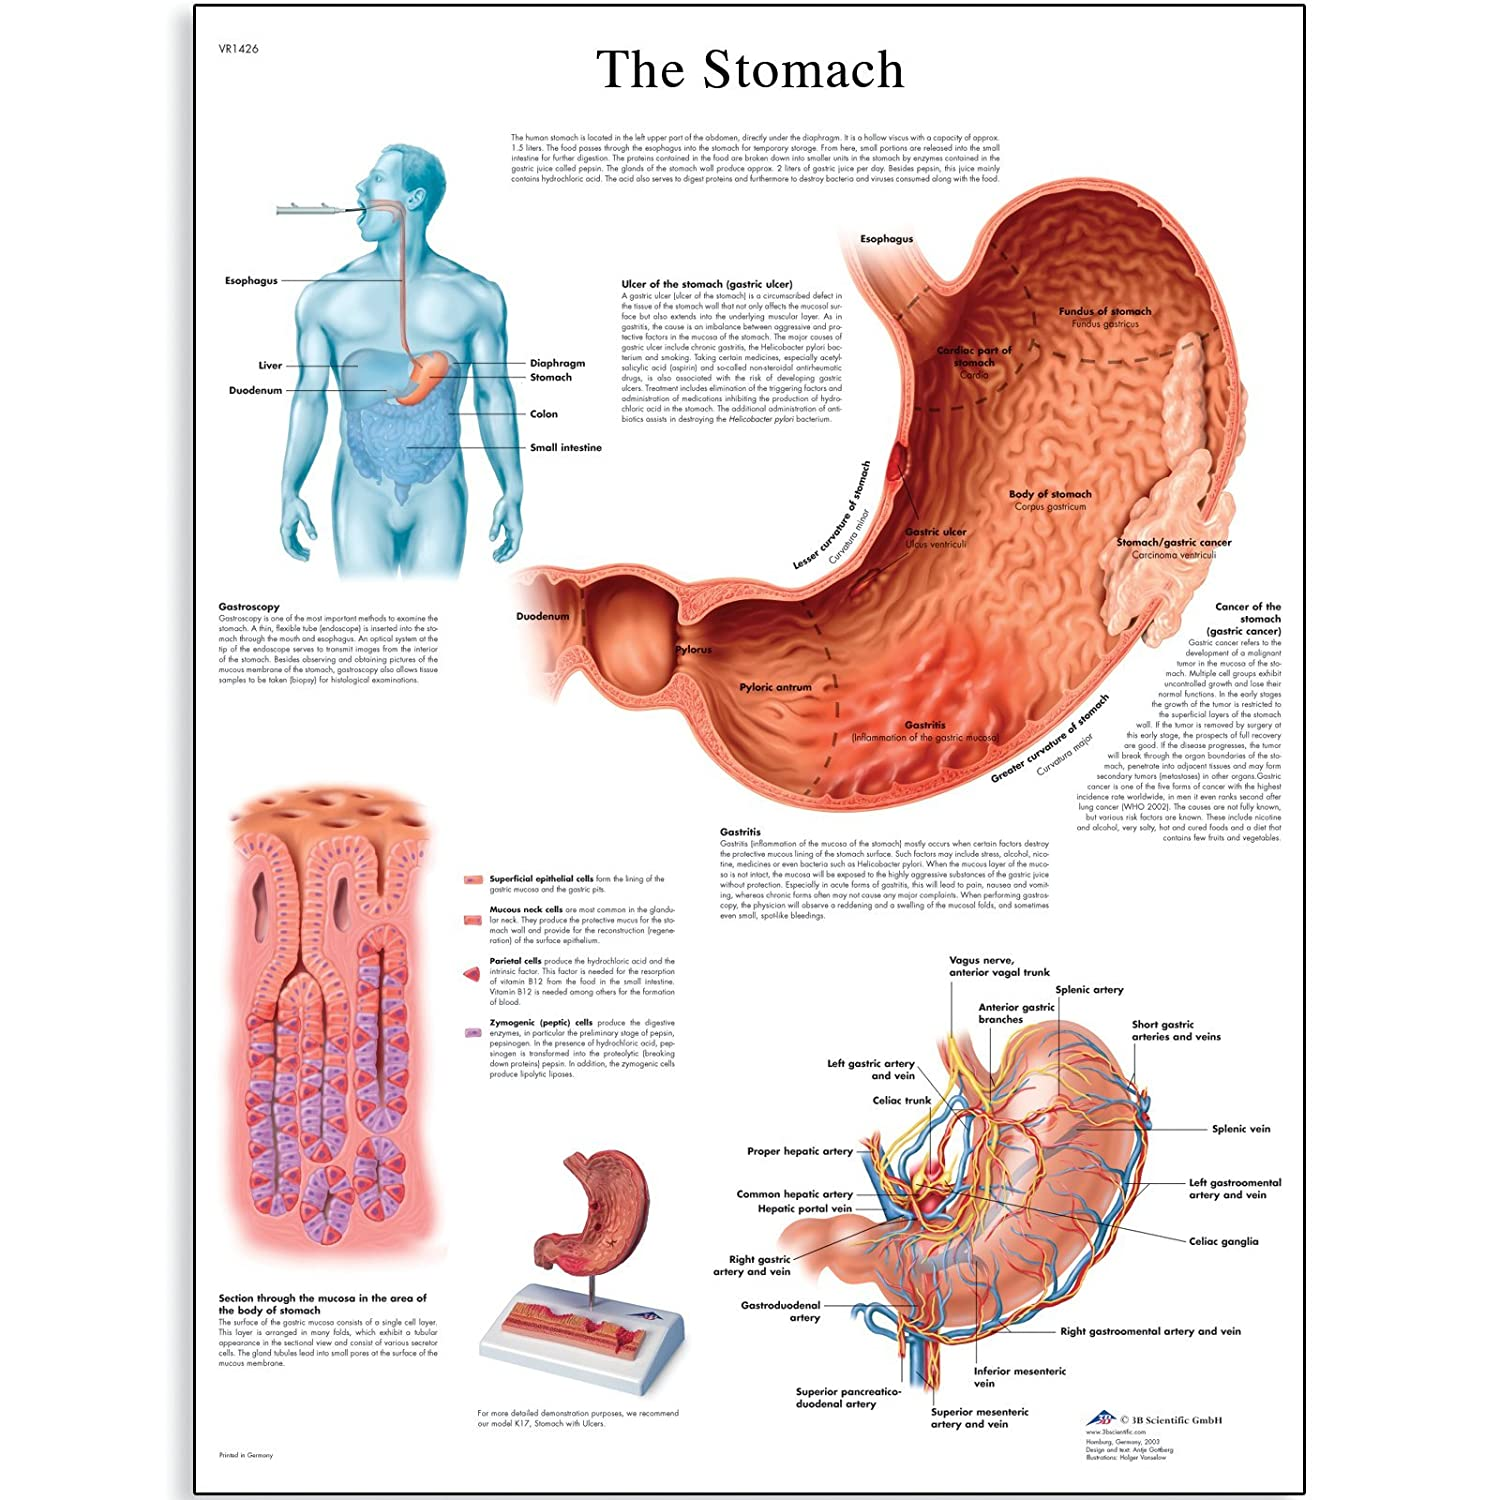 3b Scientific Vr1426l Glossy Laminated Paper The Stomach Anatomical